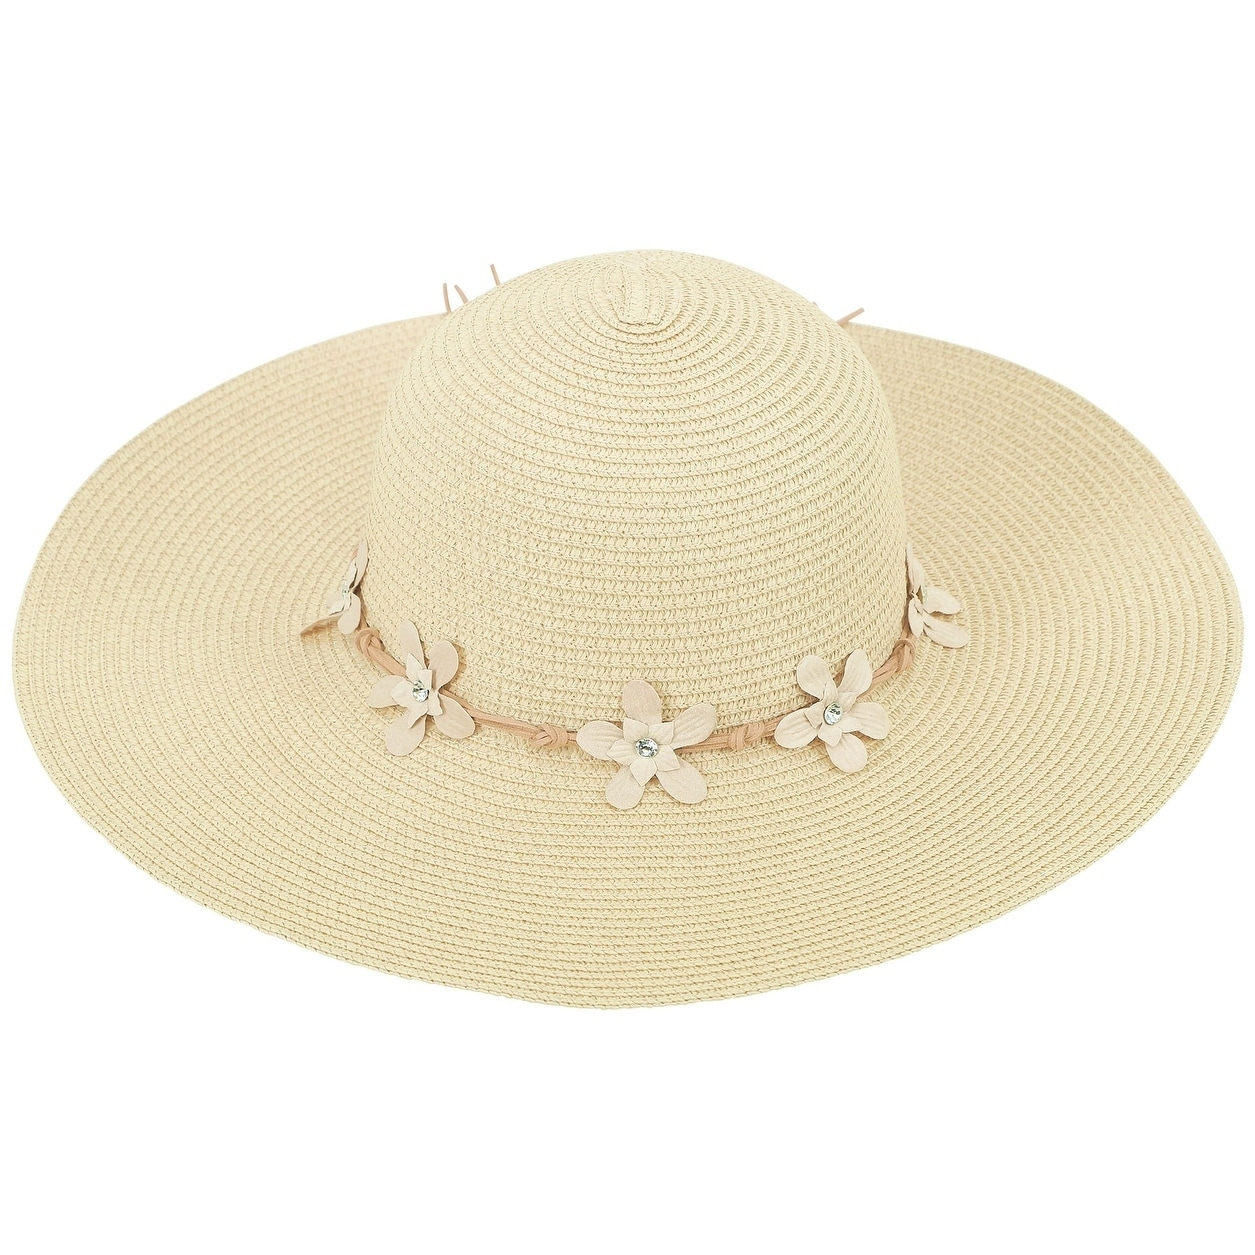 Women s Summer Wide Brim Straw Sun Hat w  Chin Strap 2d932a3b7a1